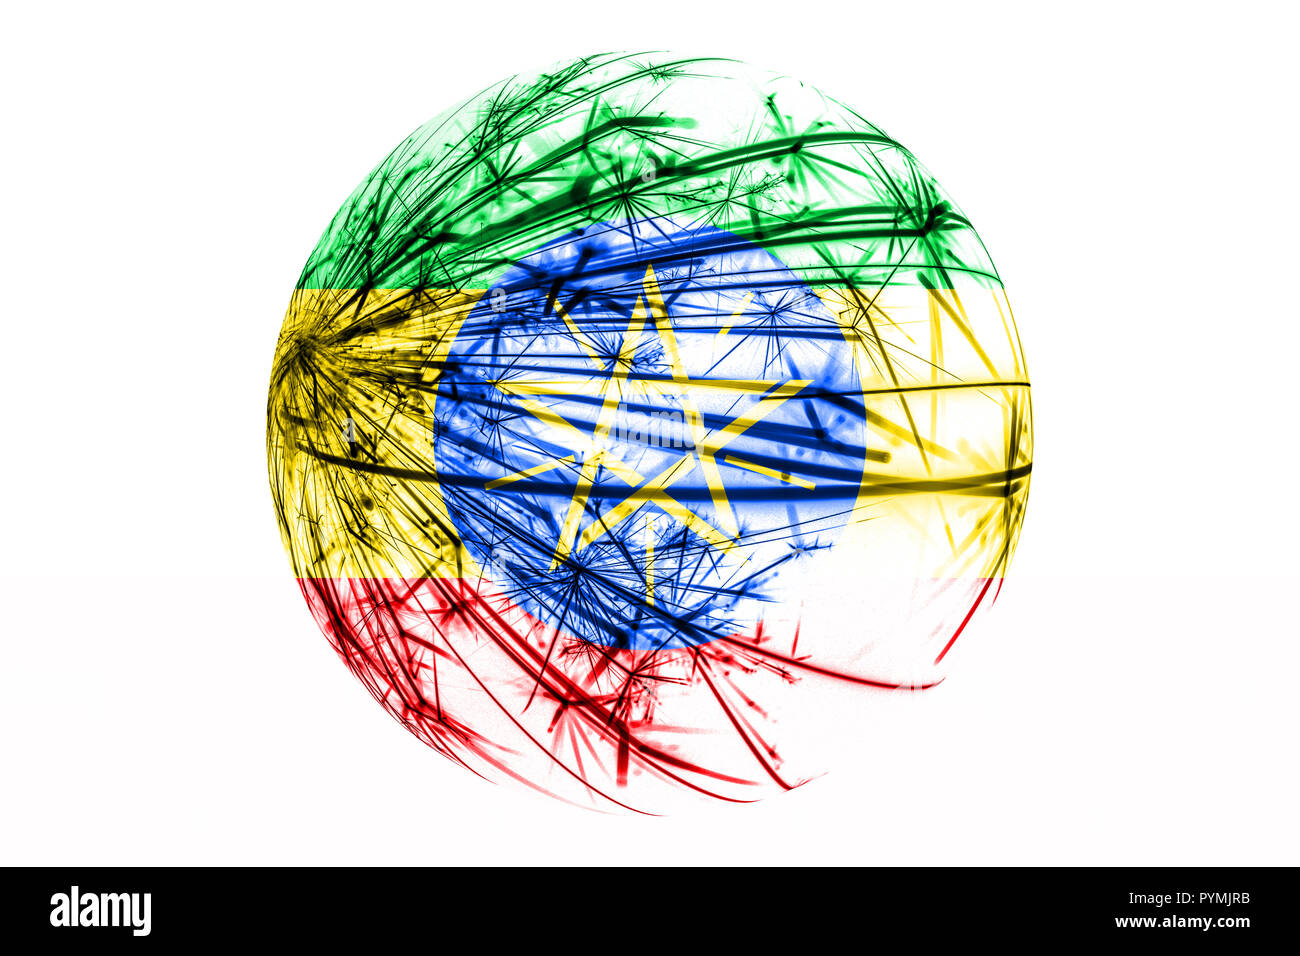 Abstract Ethiopia sparkling flag, Christmas ball concept isolated on white background - Stock Image